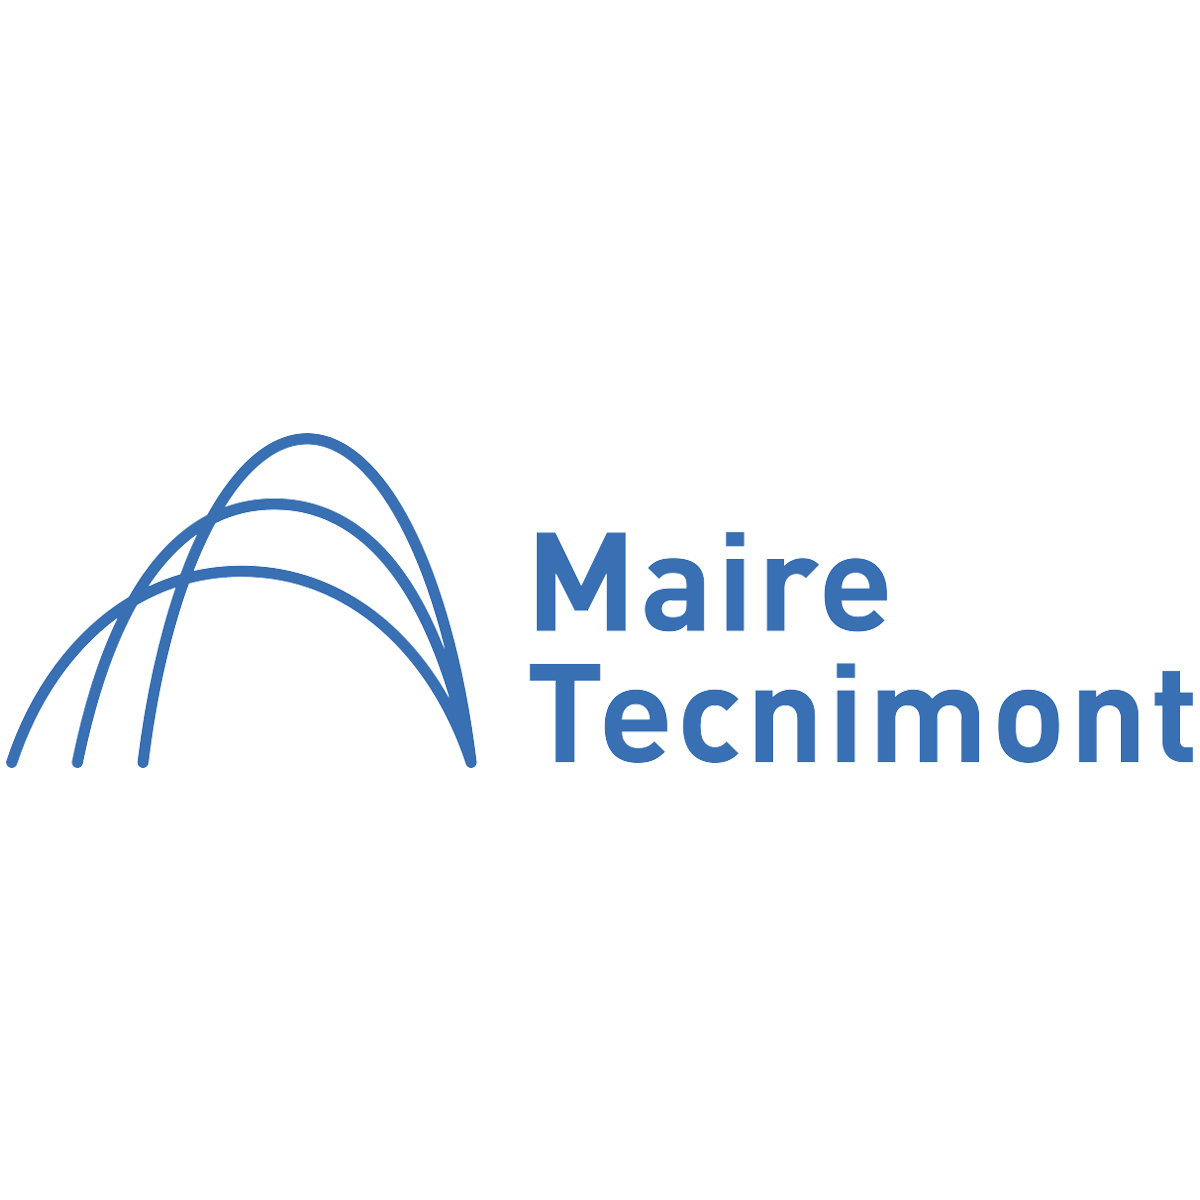 Maire Tecnimont: SCAM's Customer